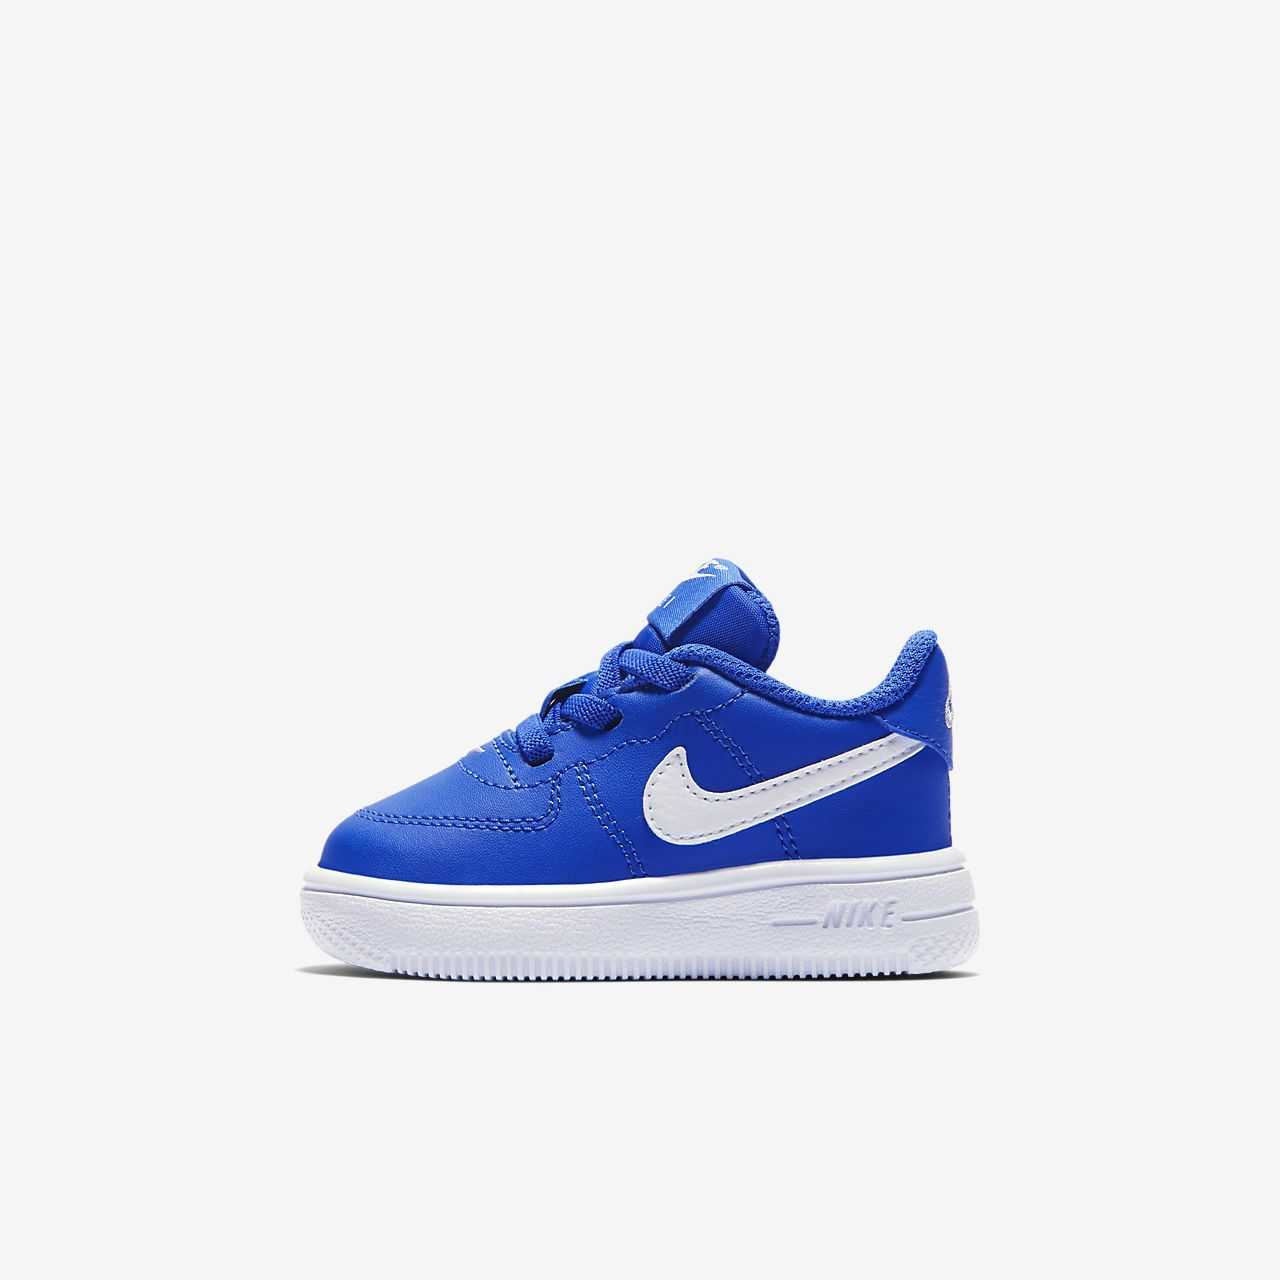 Nike Air Force 1 (0-4c) Infant/Toddler Shoe | ☆✨ F L Y Kids only! ♡ |  Pinterest | Air force shoes, Toddler shoes and Infant toddler